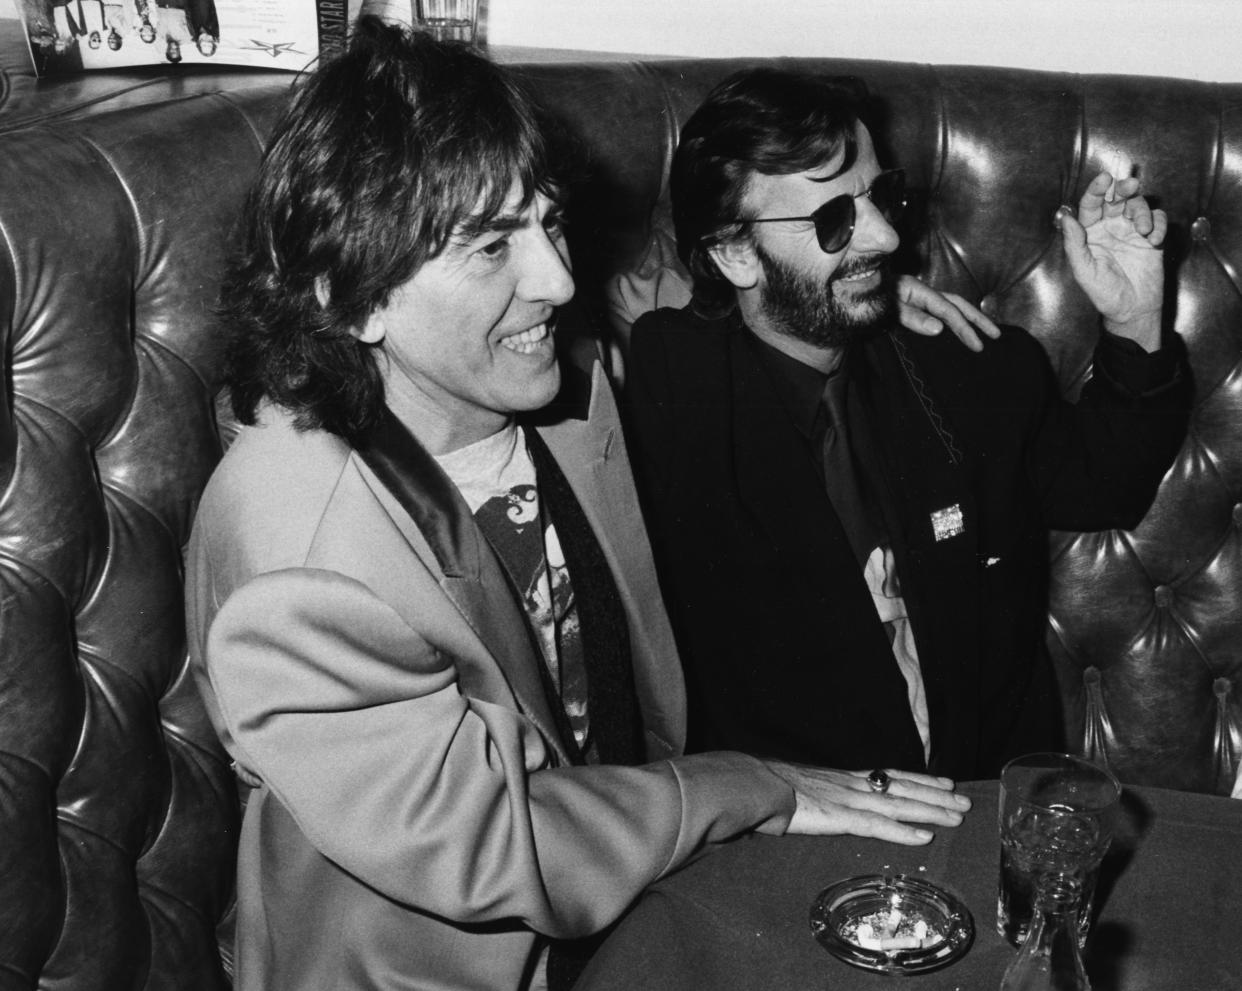 'The Beatles' musicians George Harrison (left) and Ringo Starr having a drink together in a booth, circa 1985. (Photo by Kevin Winter/Getty Images)